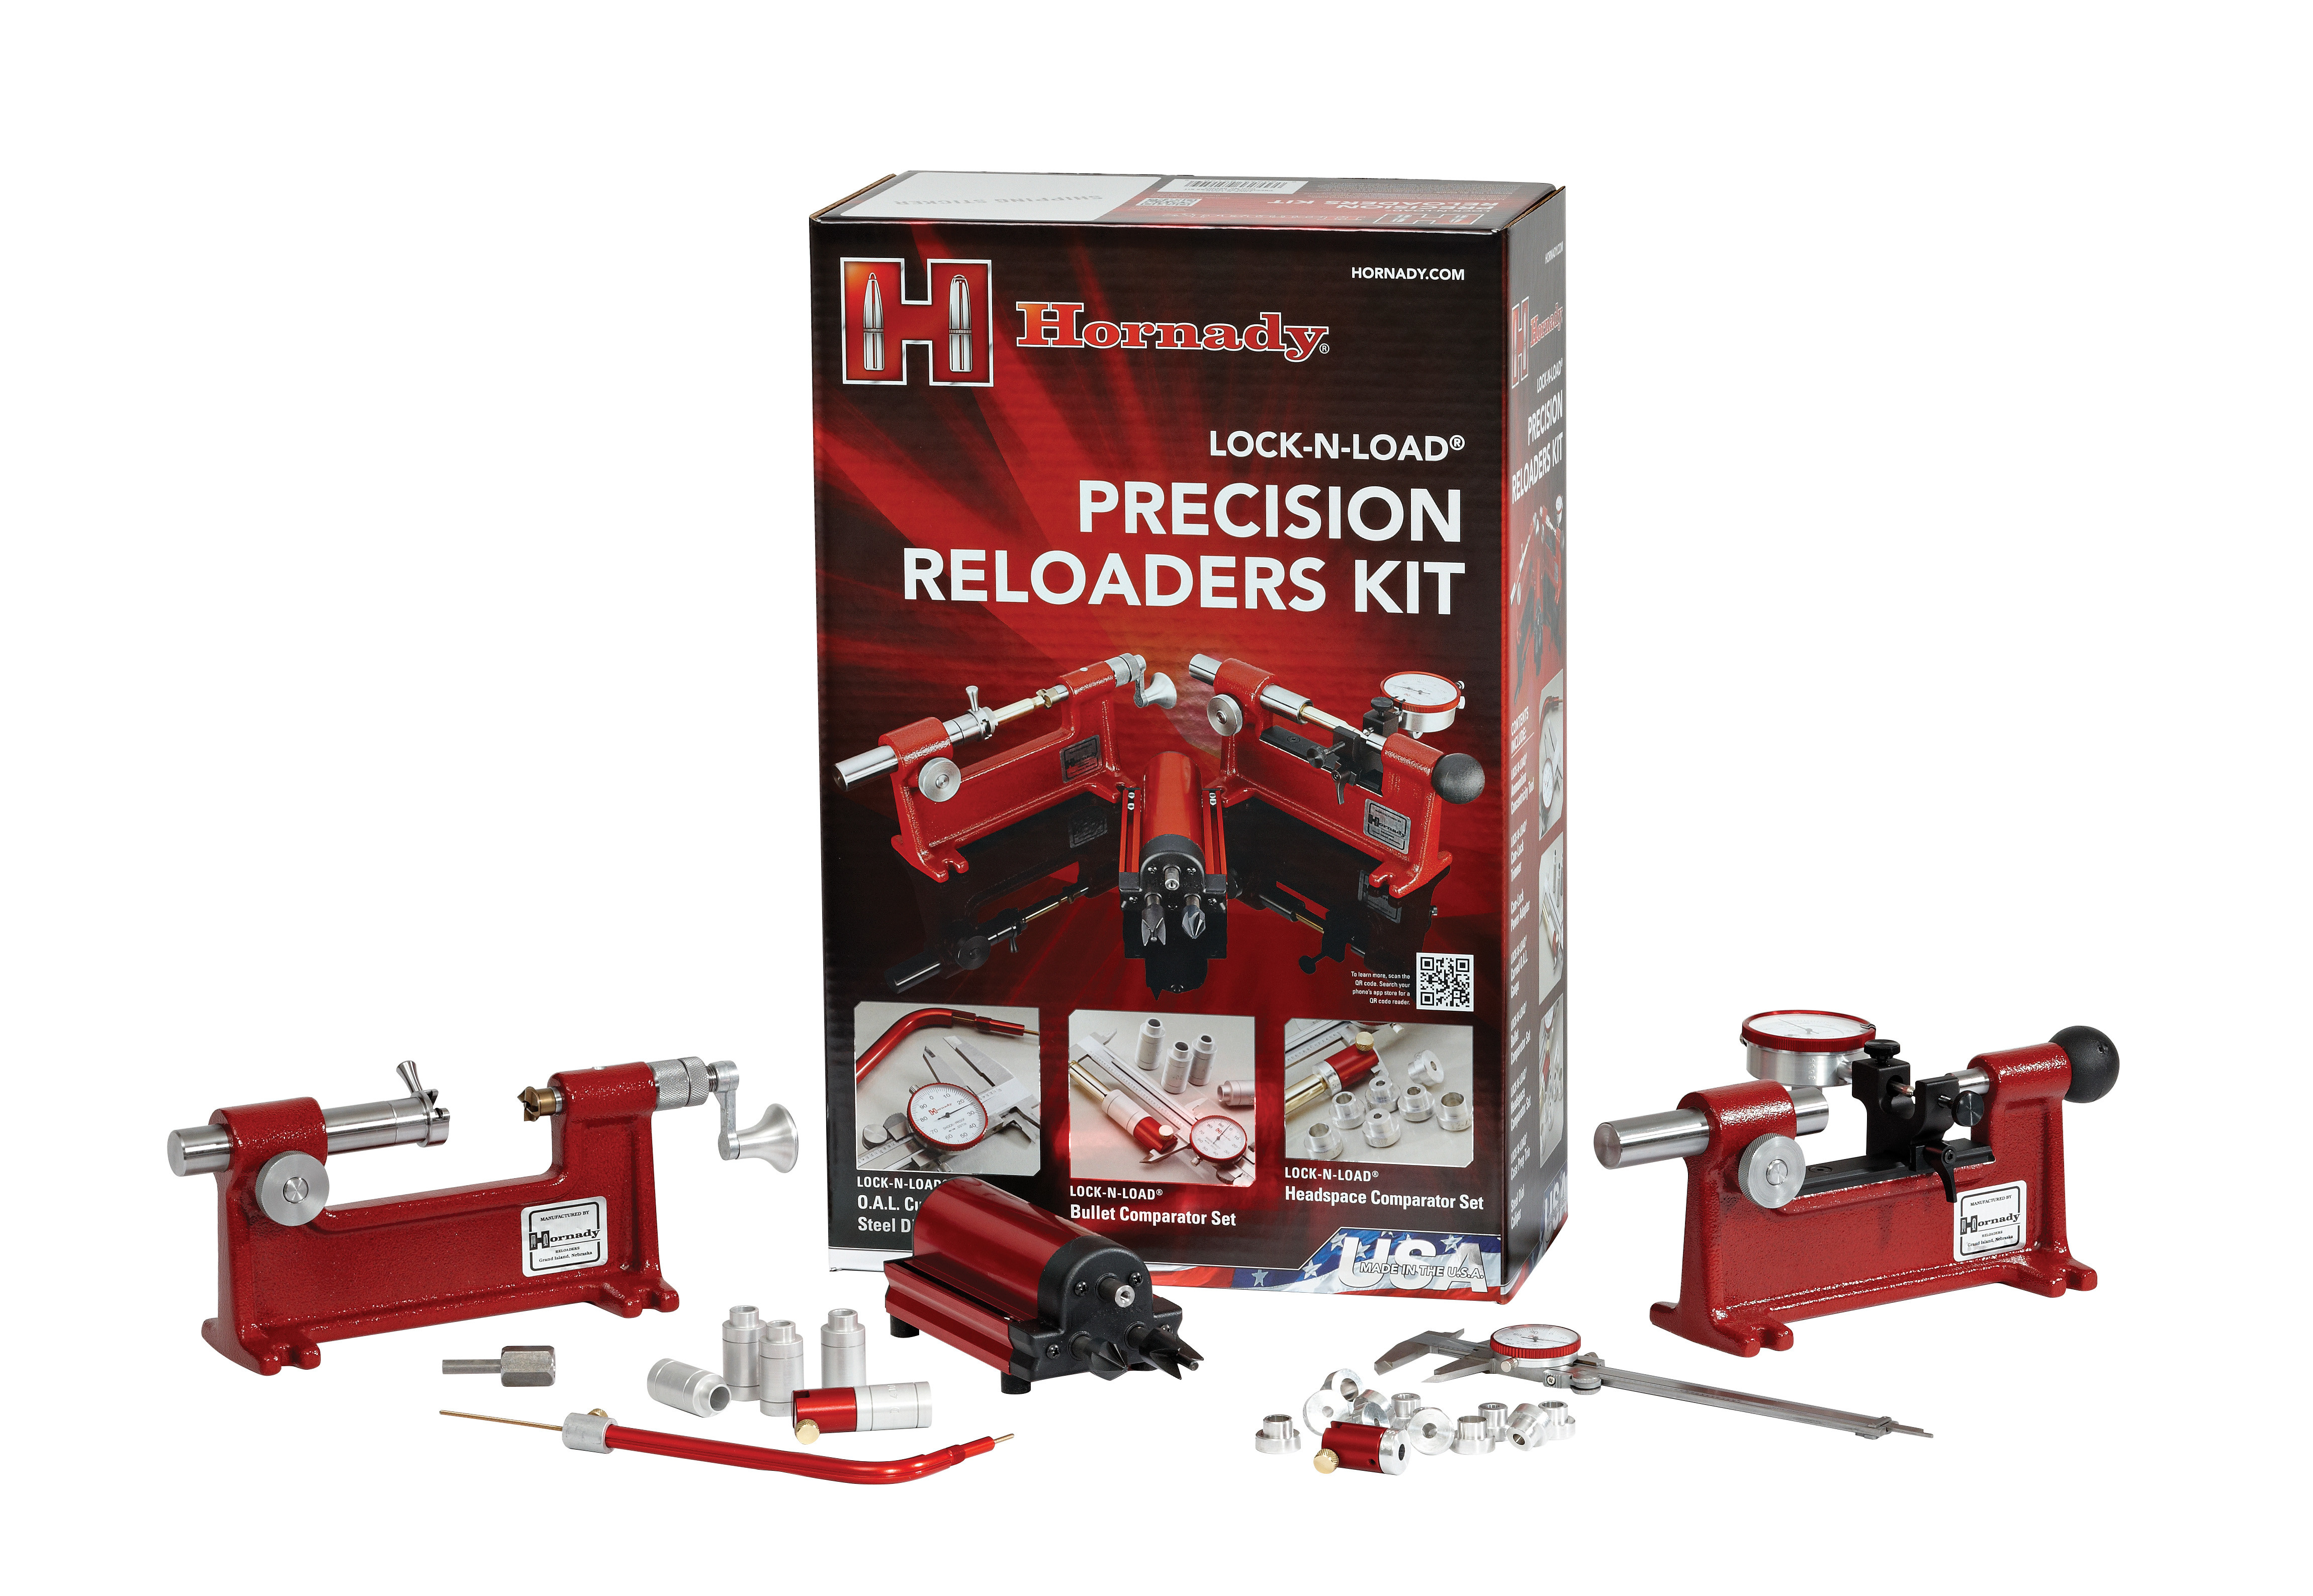 Hornady Lock-N-Load Precision Reloaders Kit